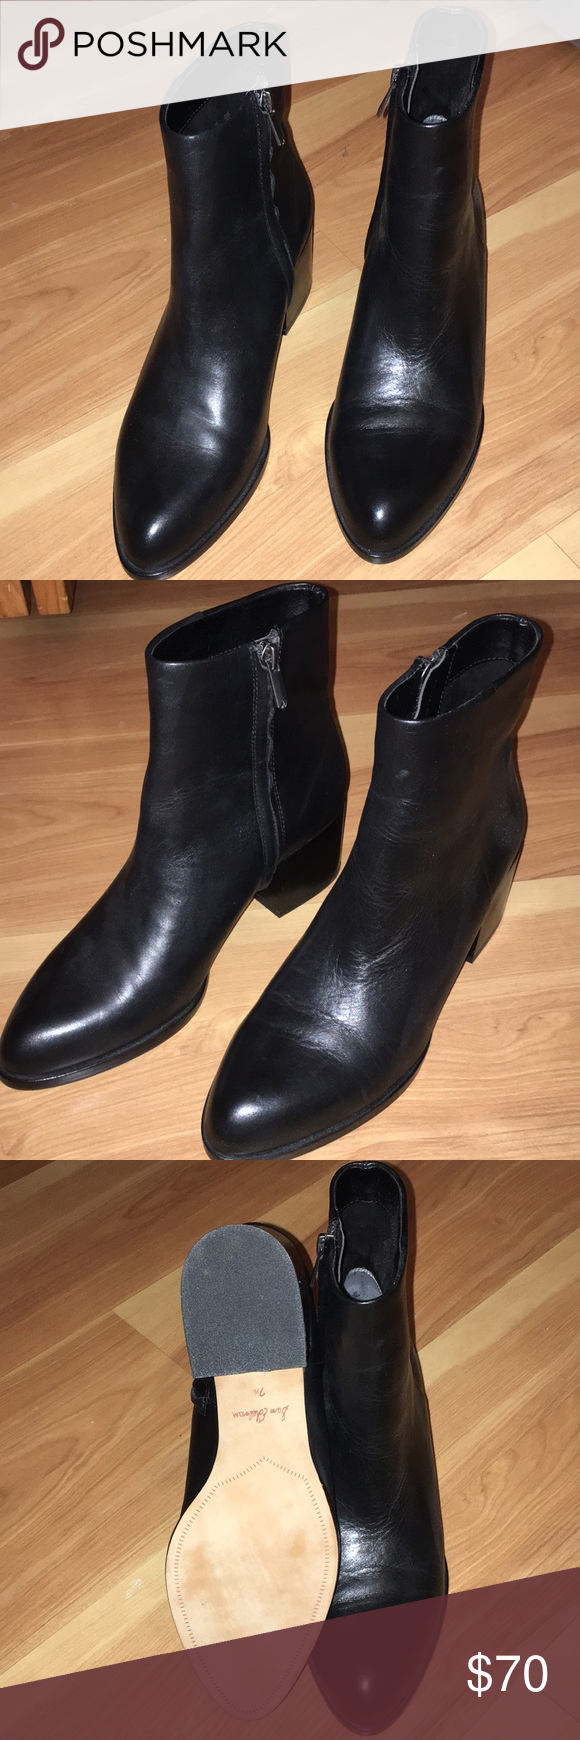 99c28757286b0 Sam Edelman Joey booties never worn Never worn leather sam Edelman Joey  booties Don t have original box Sam Edelman Shoes Ankle Boots   Booties